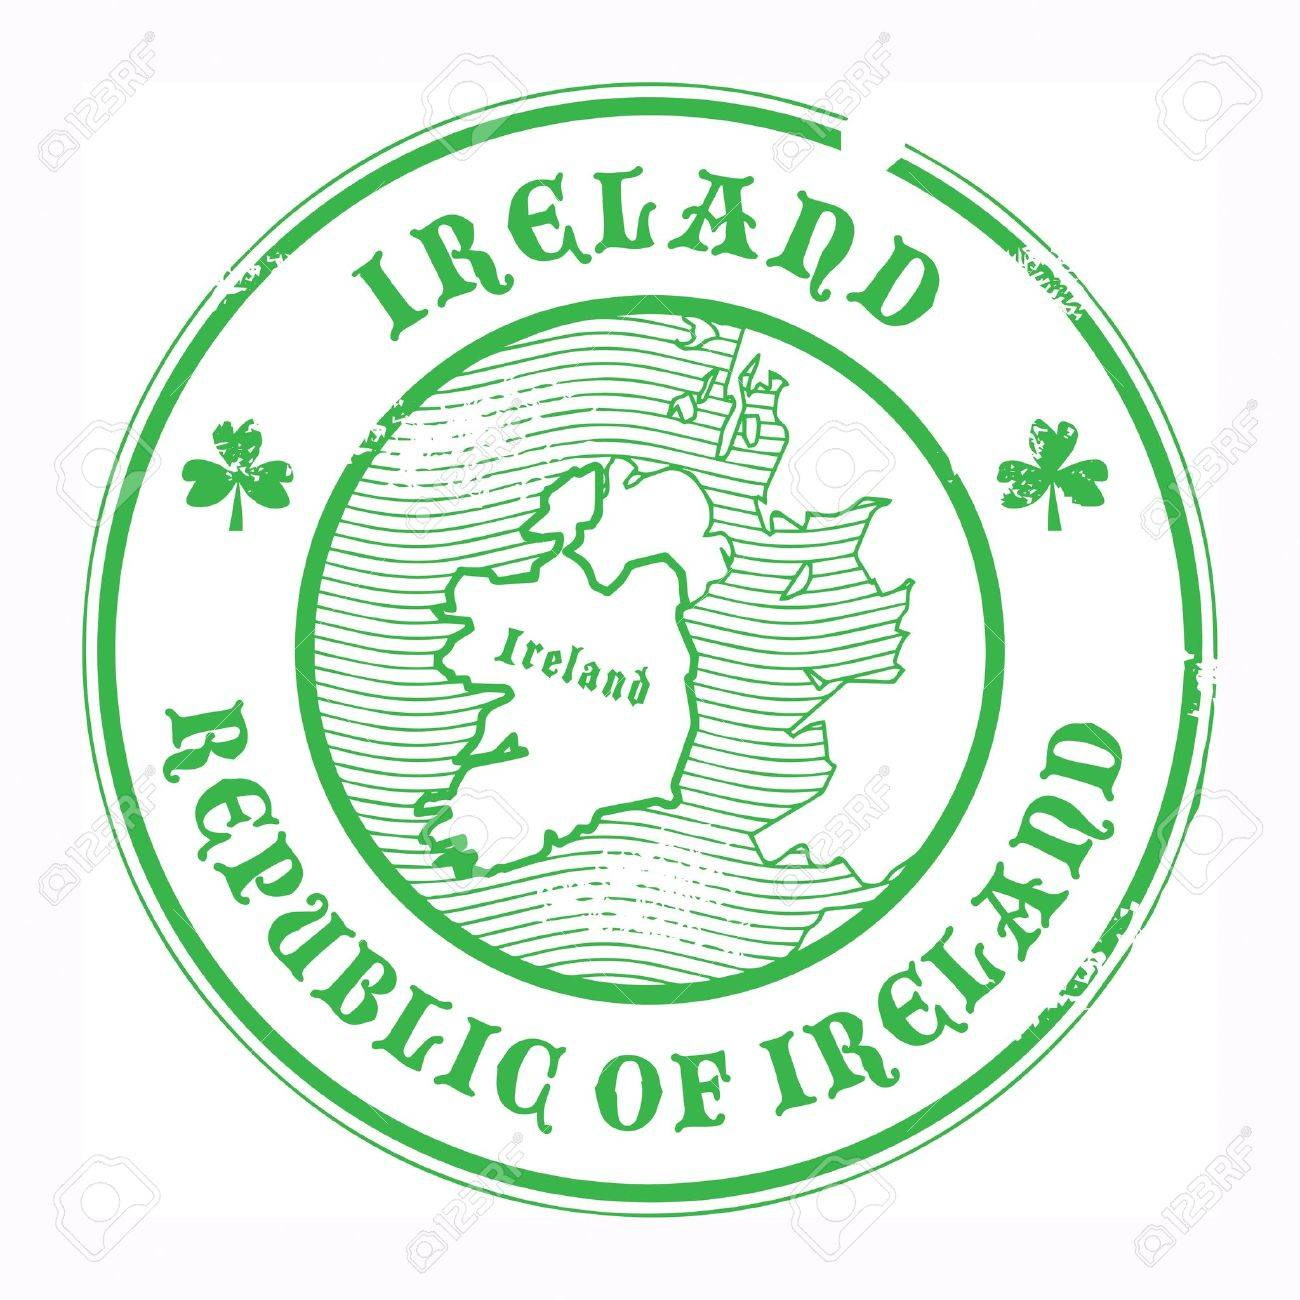 Grunge rubber stamp with the name and map of Ireland Stock Vector - 18001310